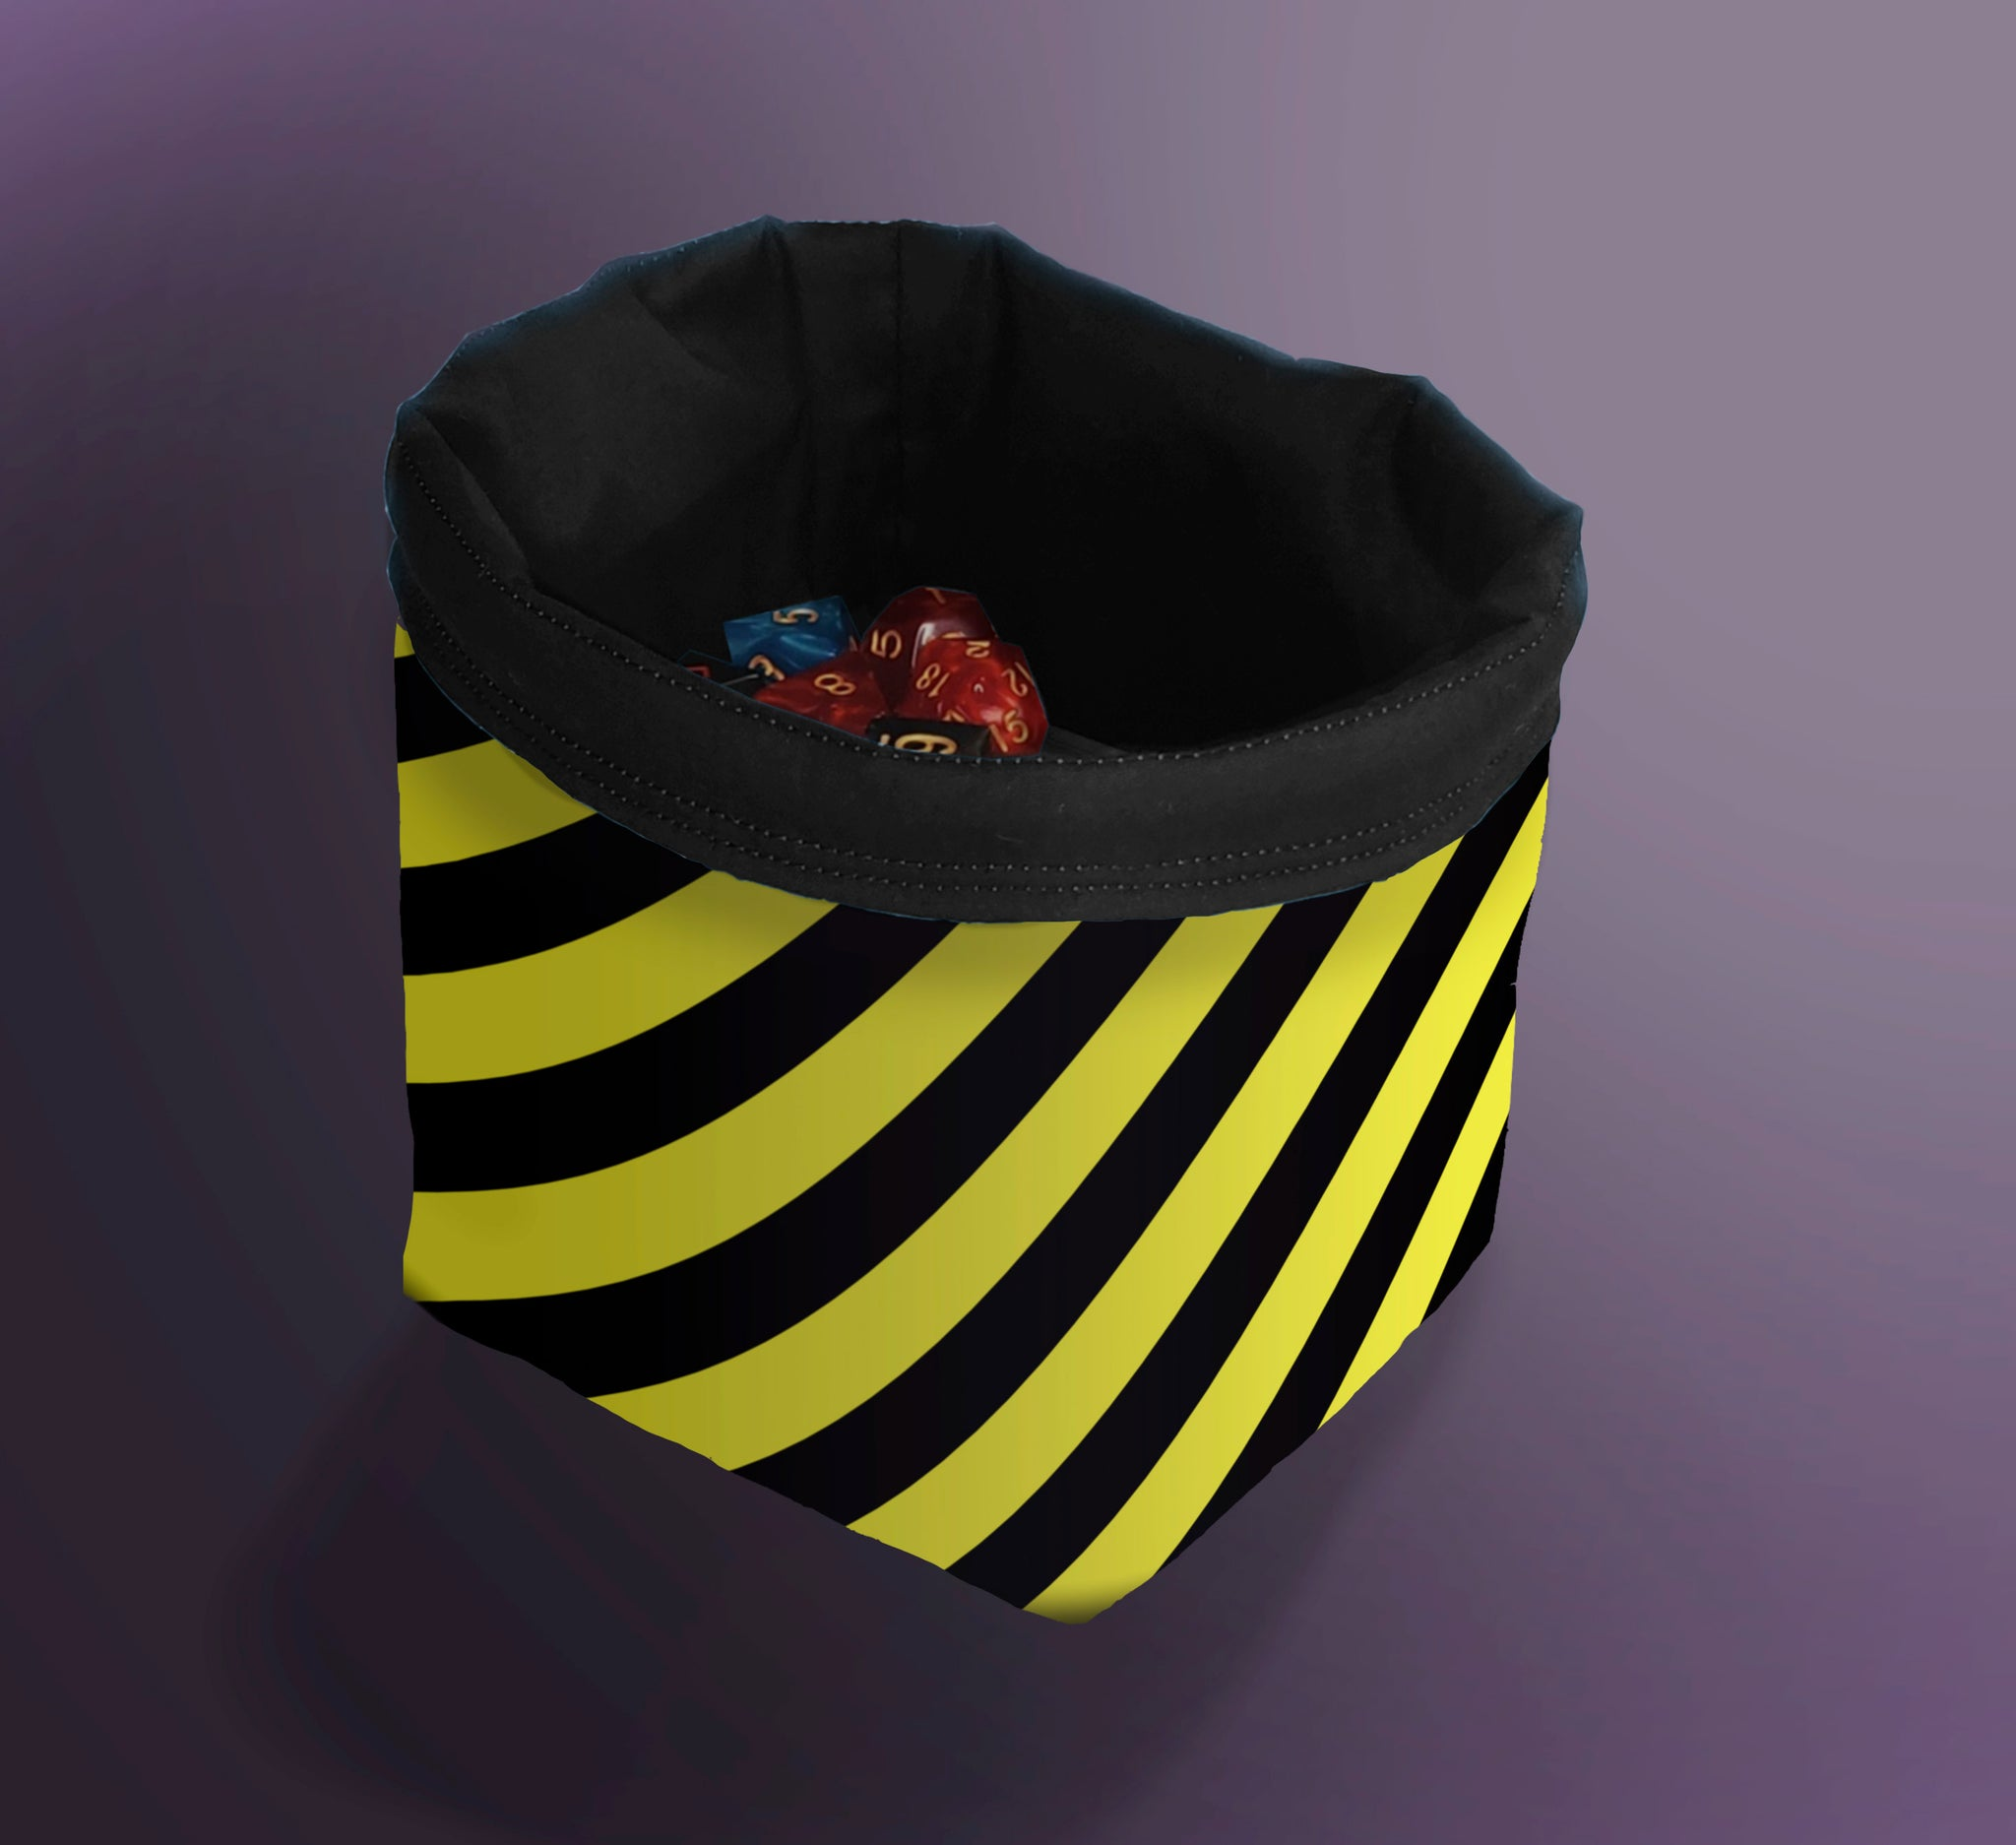 Hazard Warning Dice Bag, Diagonal Striped Bag, D&D Dice Bag, Bag for Dice, Token Bag, Draw Bag, Monster Cup